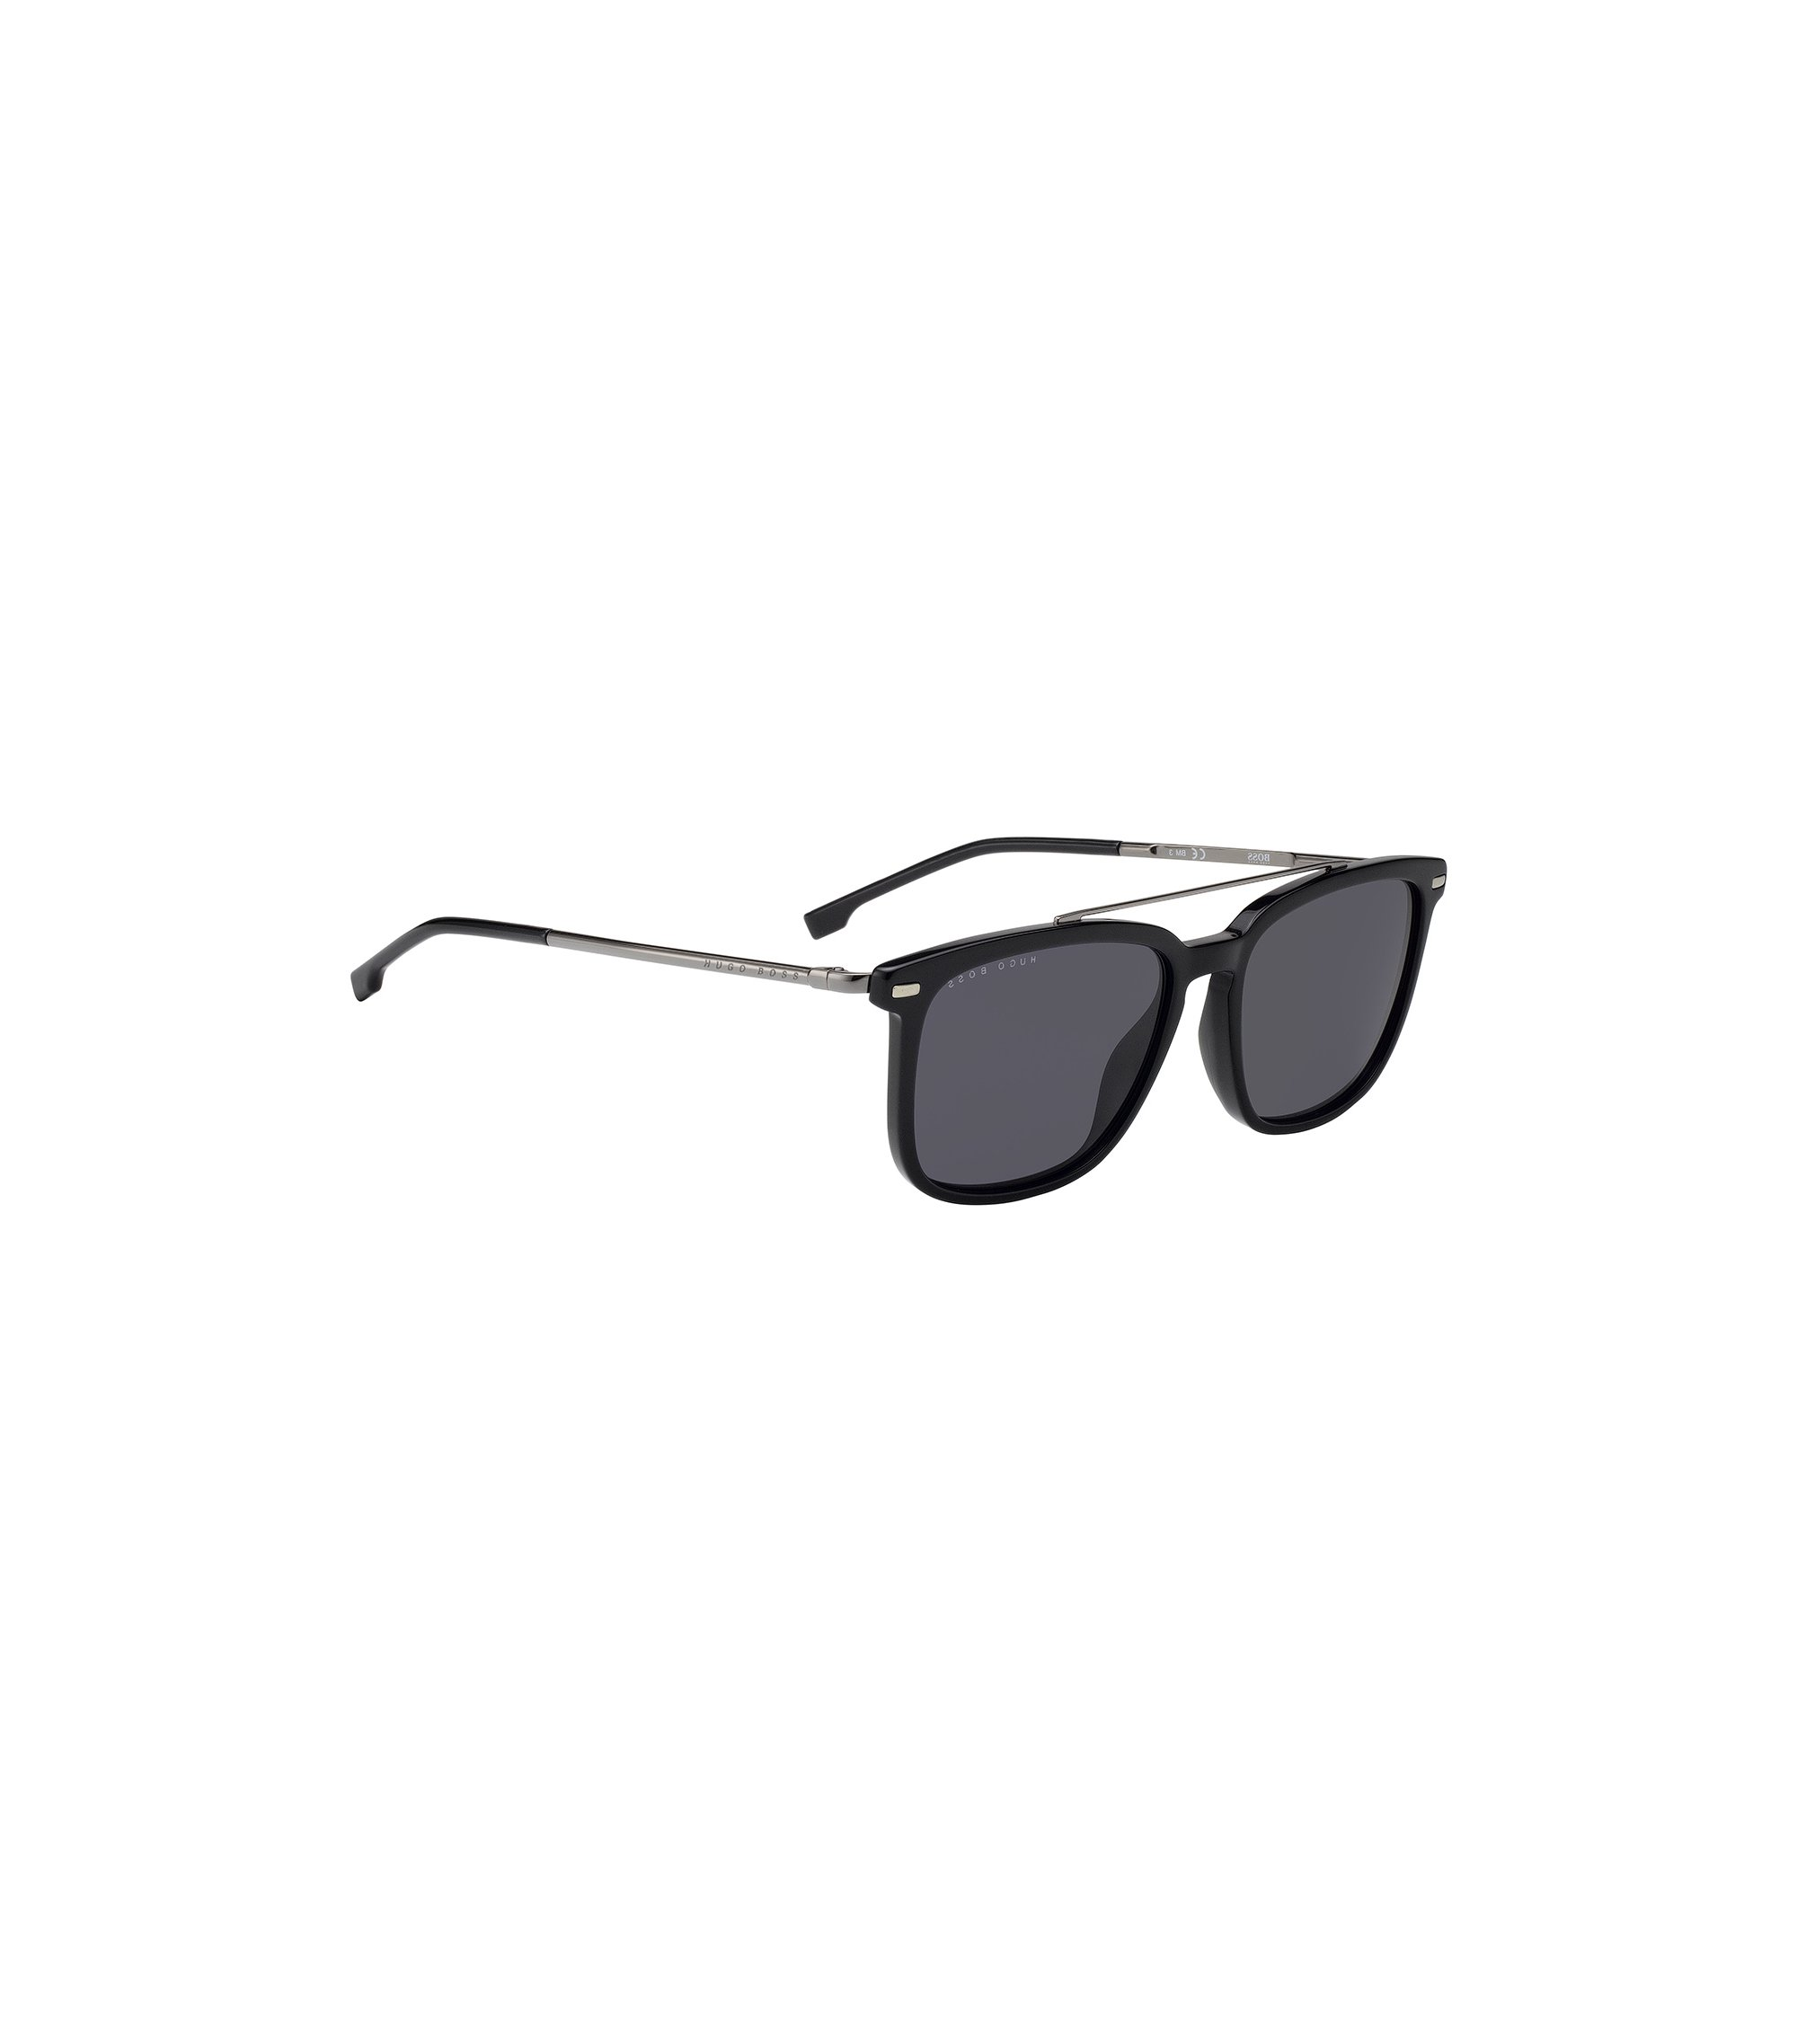 Ultralight sunglasses in metal and matte acetate, Black